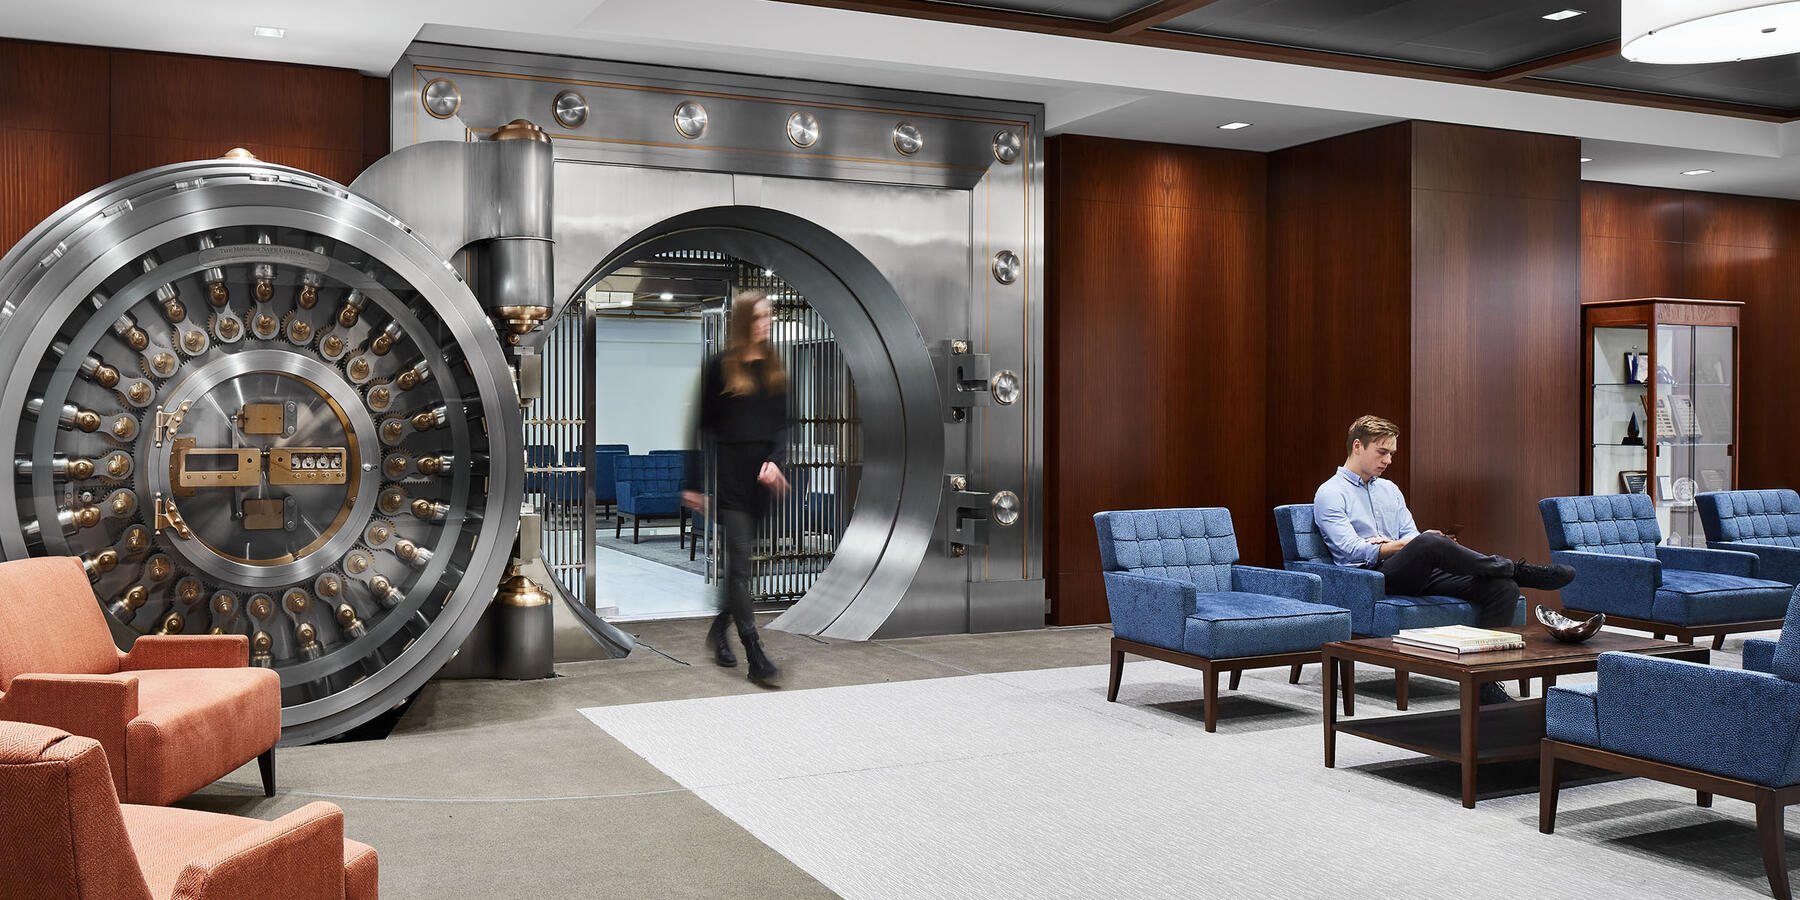 Interior Corporate Construction - CIBC Chicago interior vault